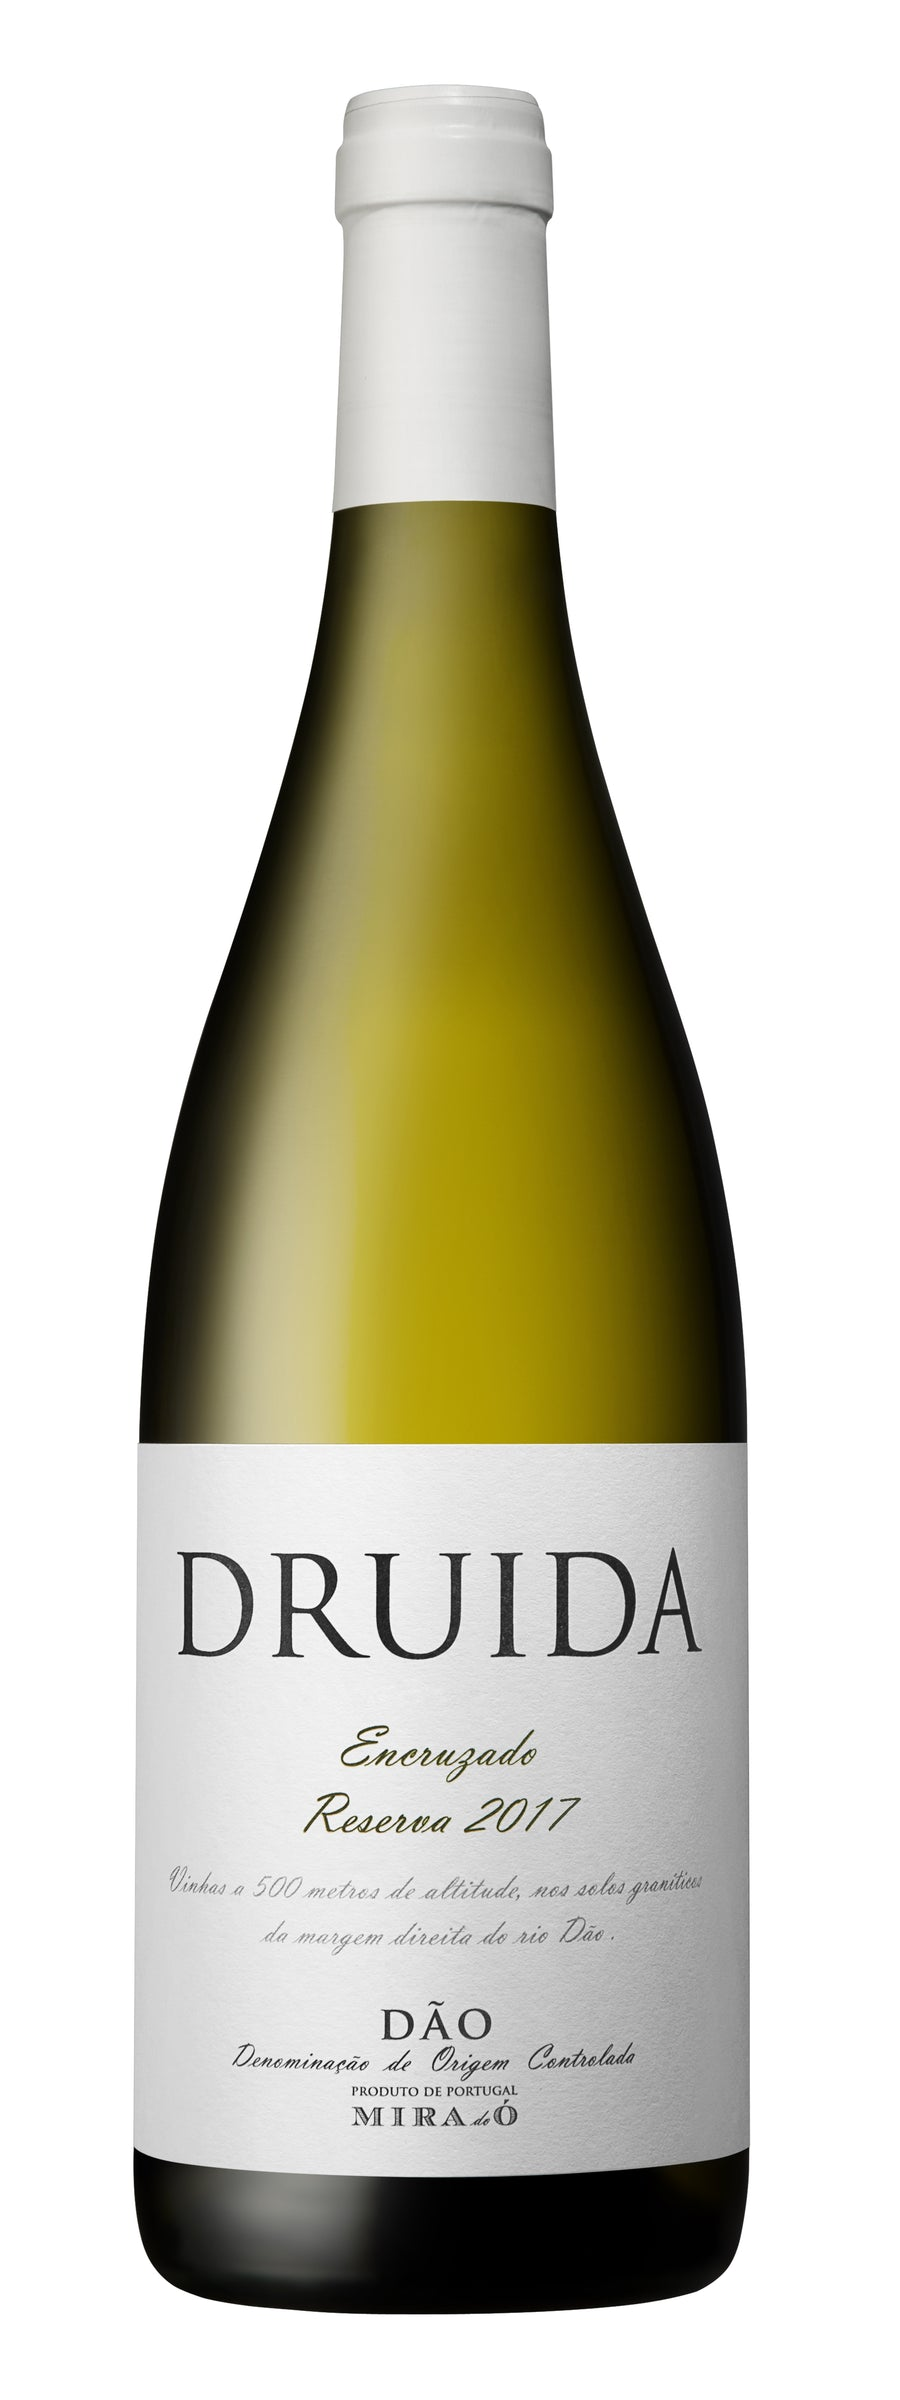 Mira do Ó Druida Encruzado Reserva 2018 - Red Squirrel Wine